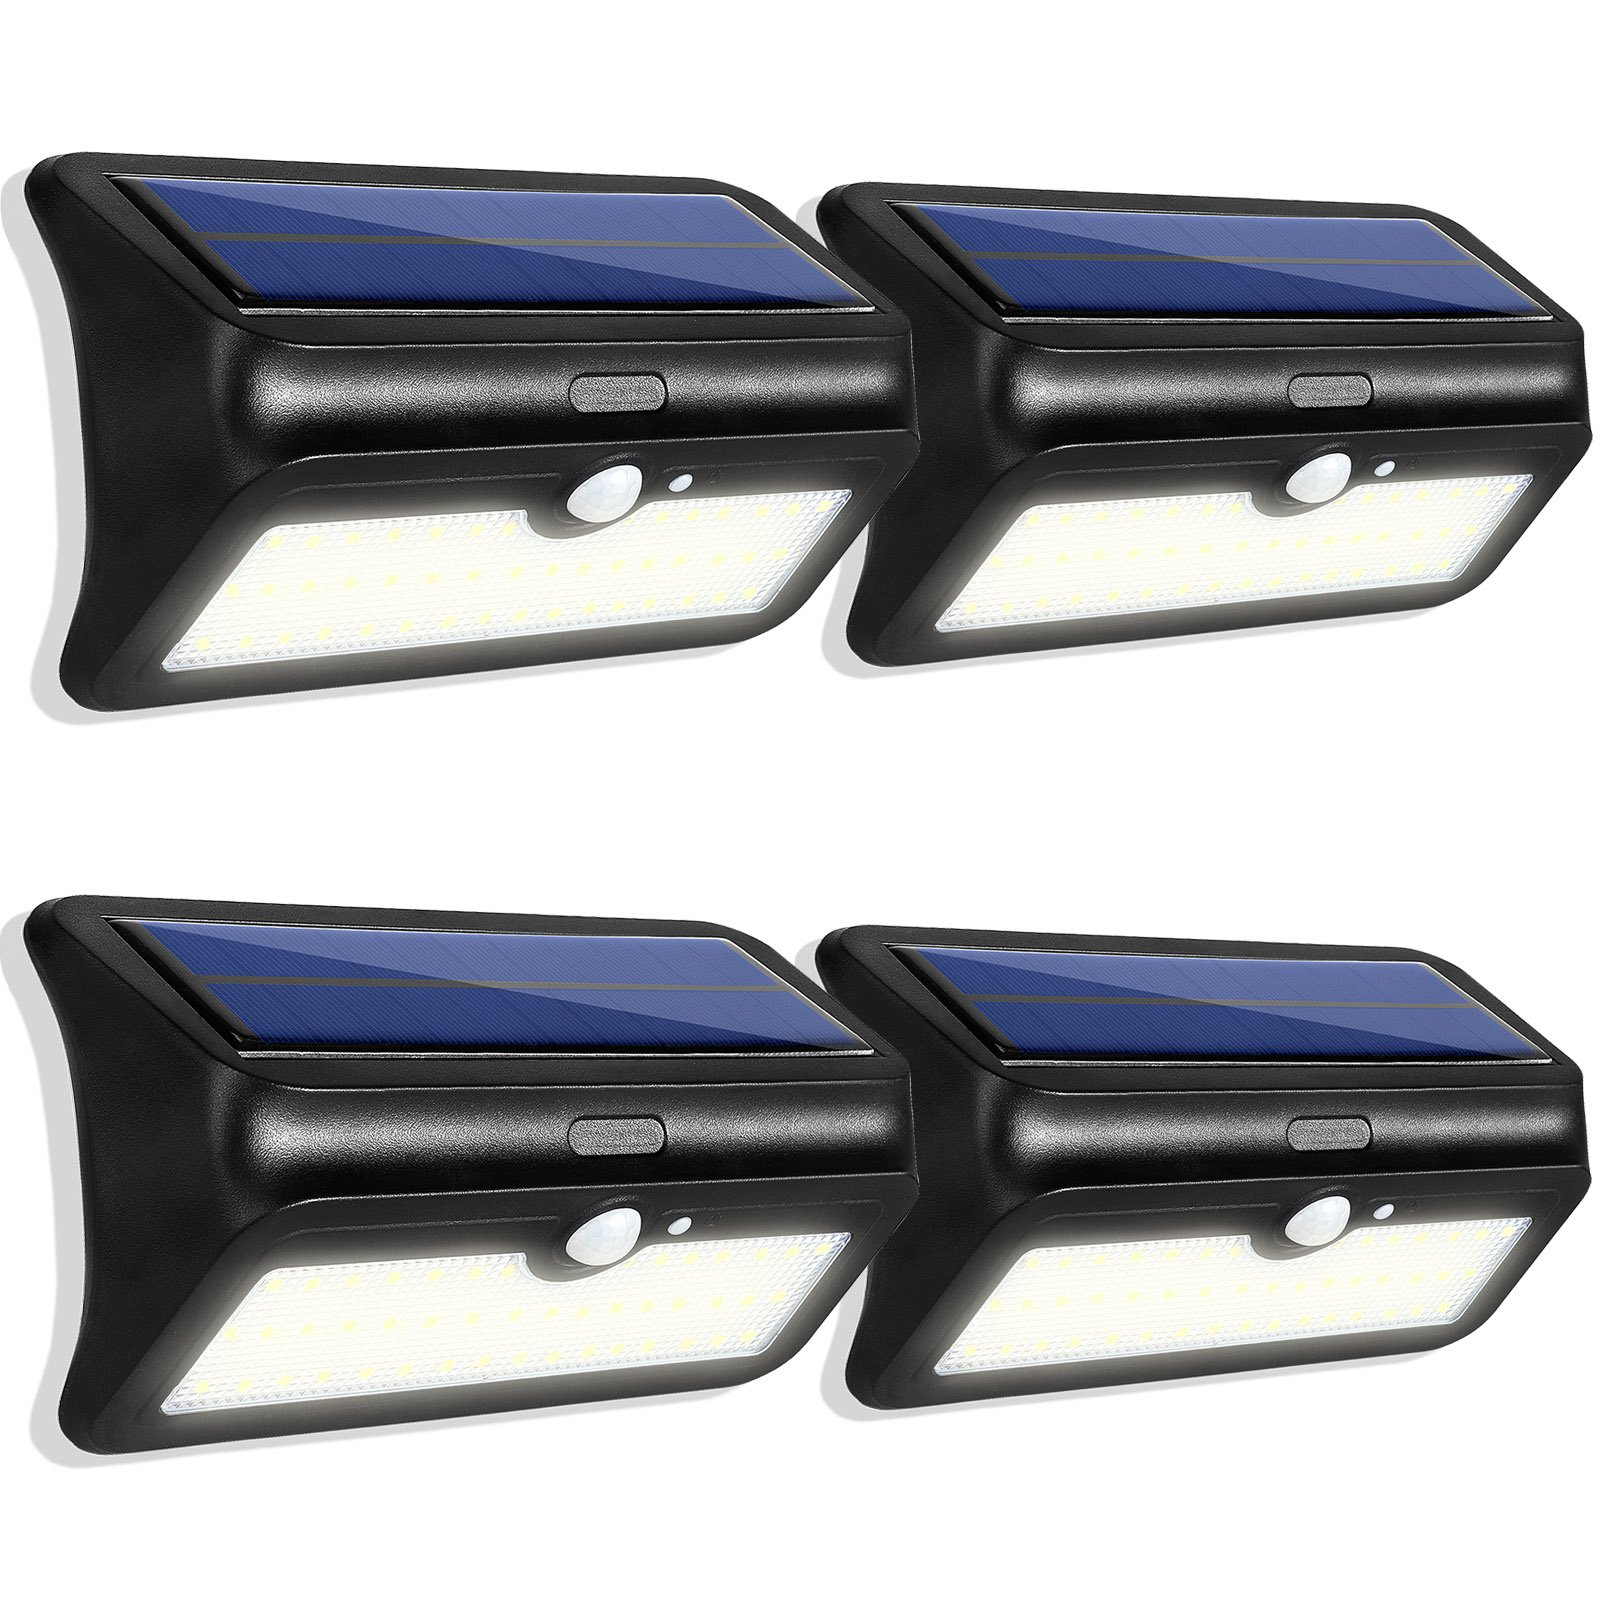 46 LED Solar Lighting Waterproof Solar Lights Outdoor Wireless Motion Sensor Light Auto On/Off with Dim Mode Solar Powered Security Light for Garden, Patio, Driveway, Back Yard (4 Pack)